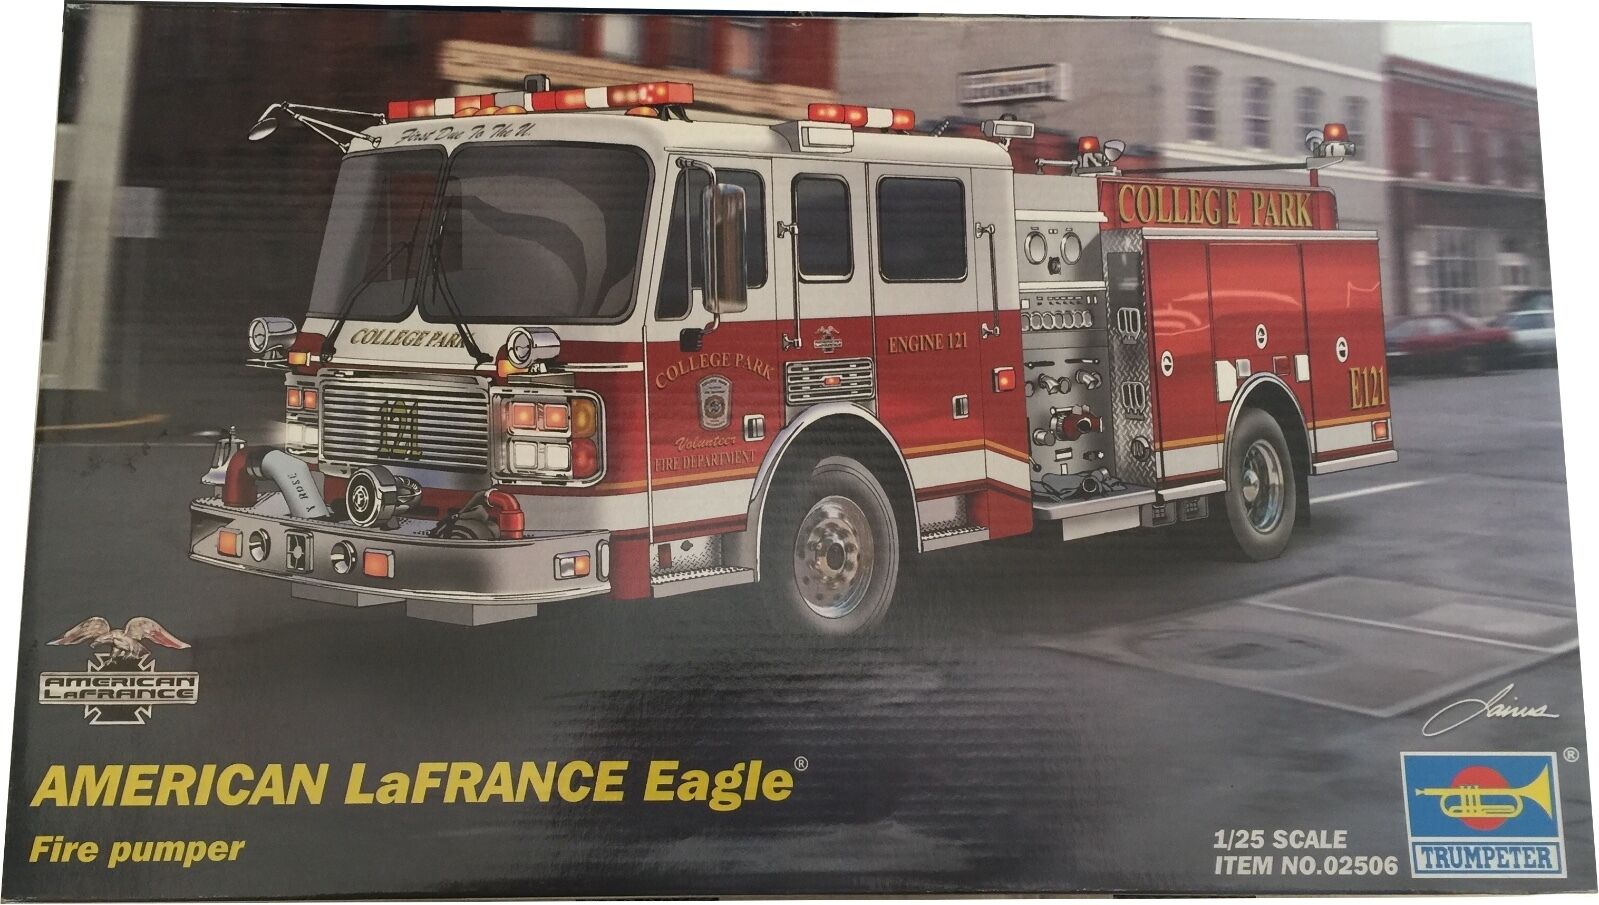 Trumpeter American LaFrance Eagle Fire Pumper Model Kit Ref 02506 Escala 1 25; N